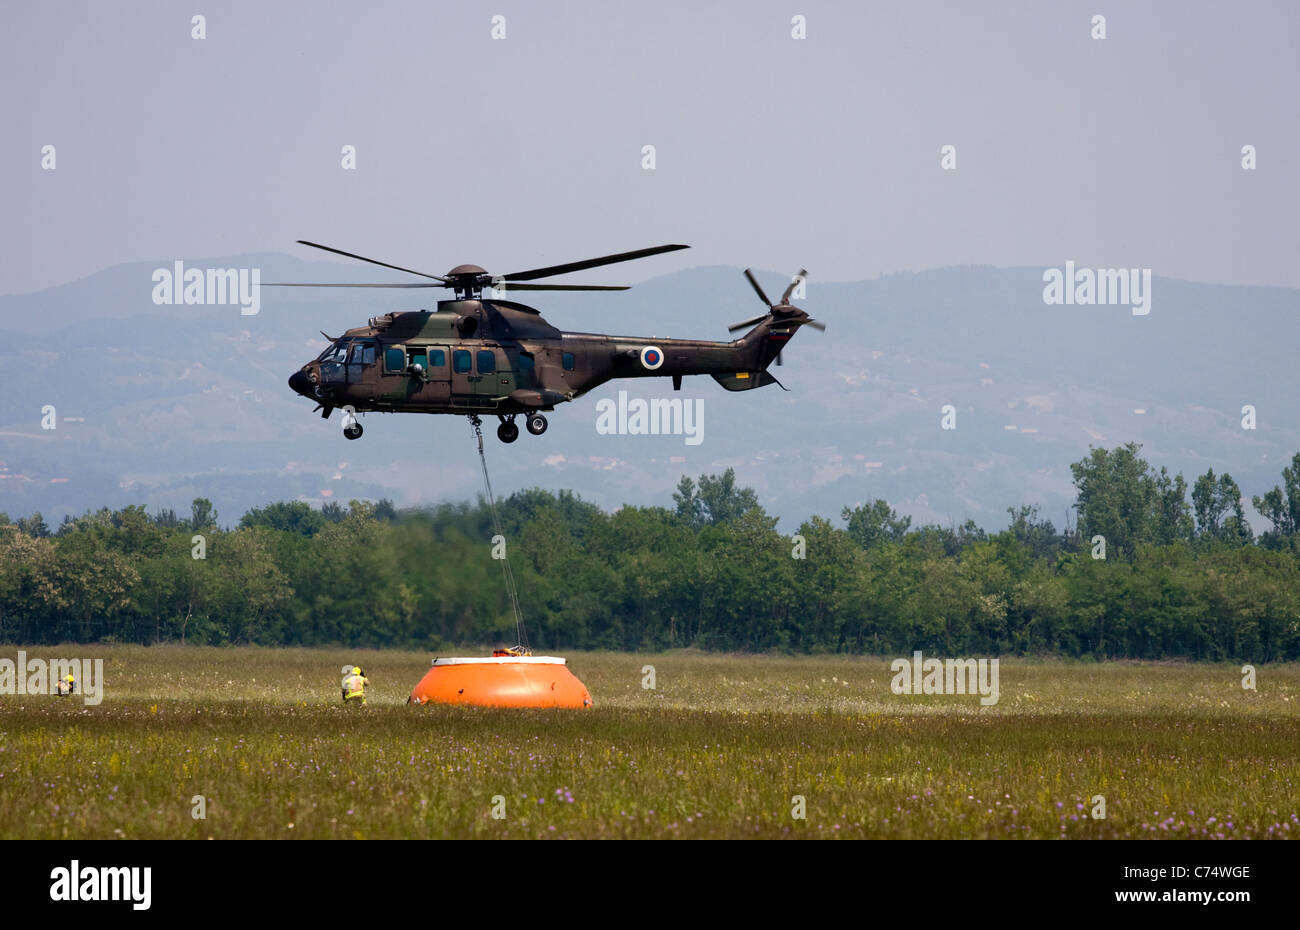 Helicopter floating and picking up water. - Stock Image